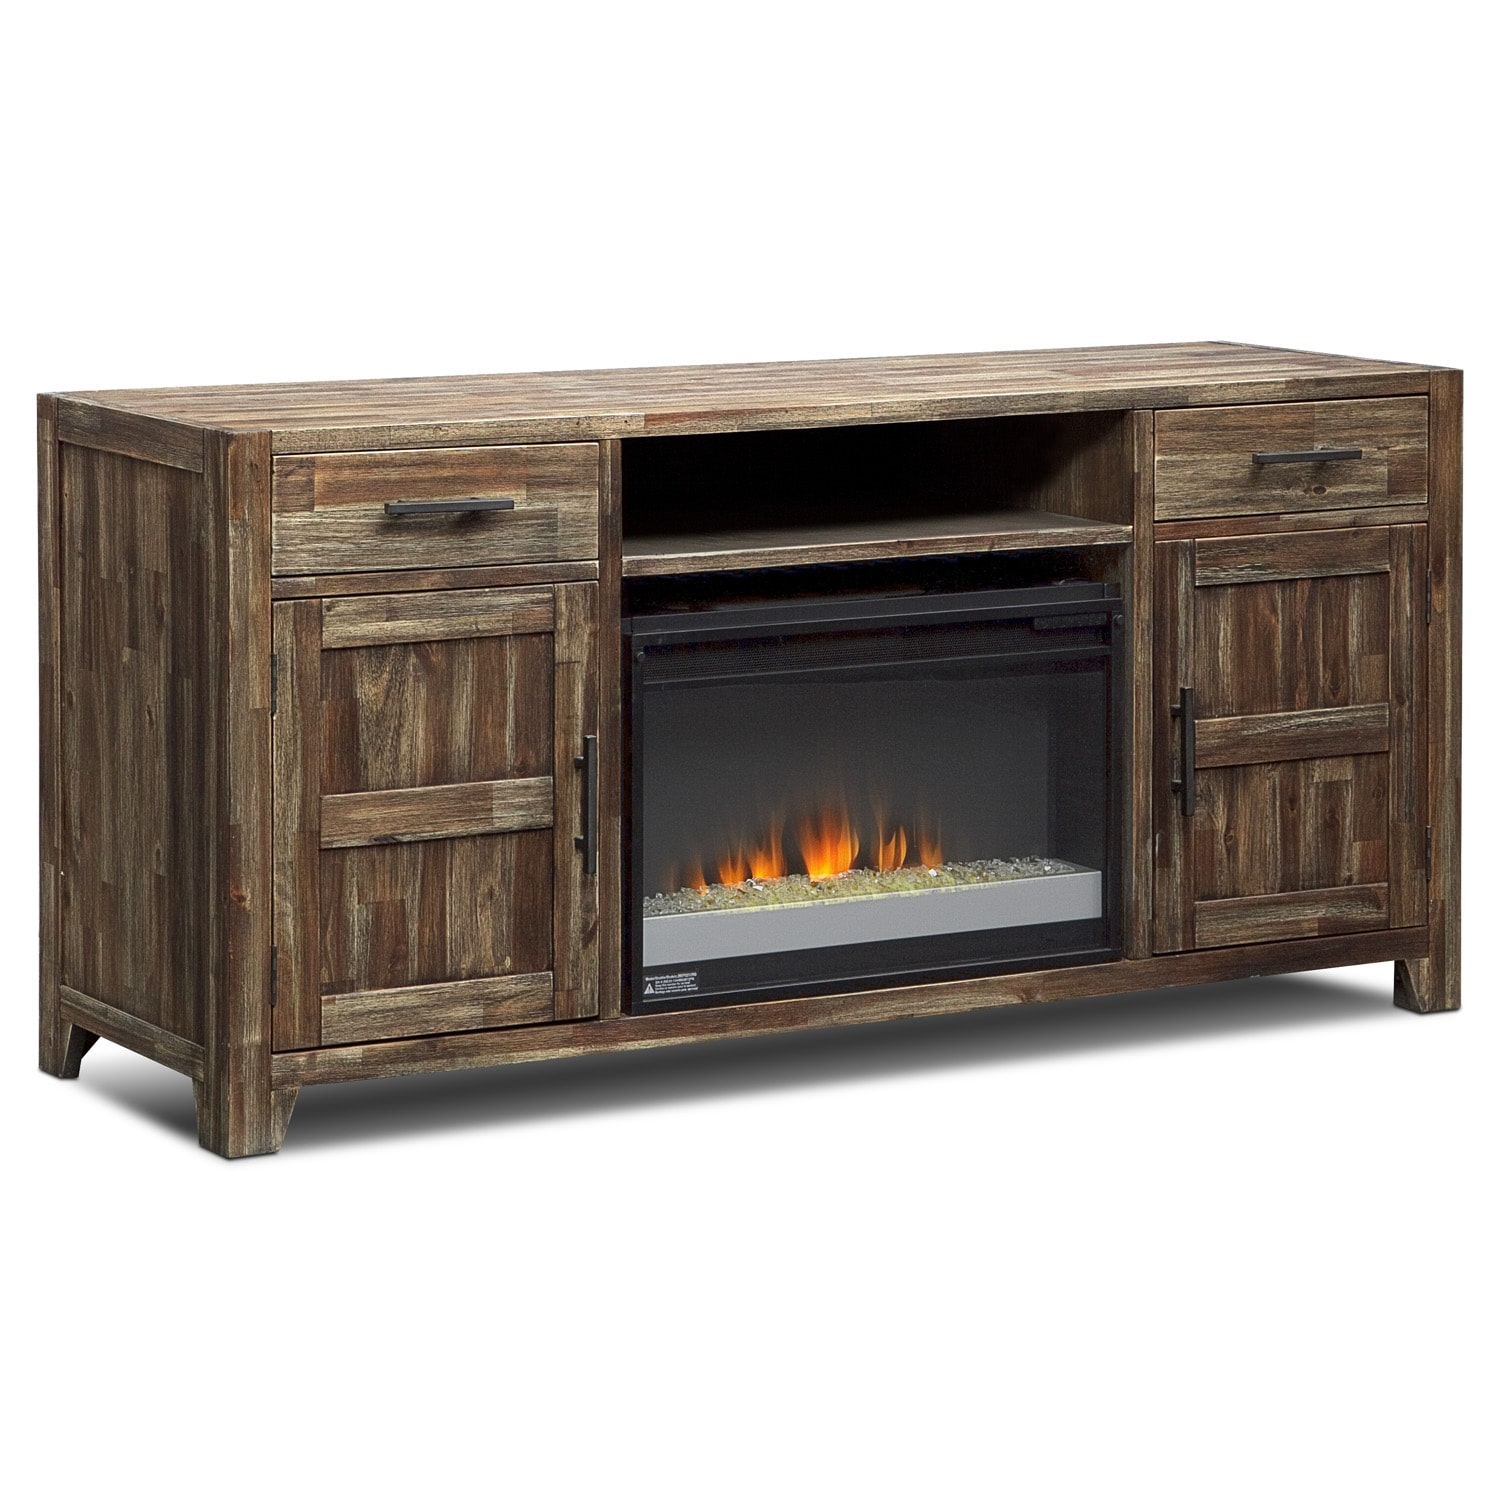 Hutchinson Entertainment Wall Units Fireplace TV Stand  : 347431 from furniture.com size 1500 x 1500 jpeg 743kB